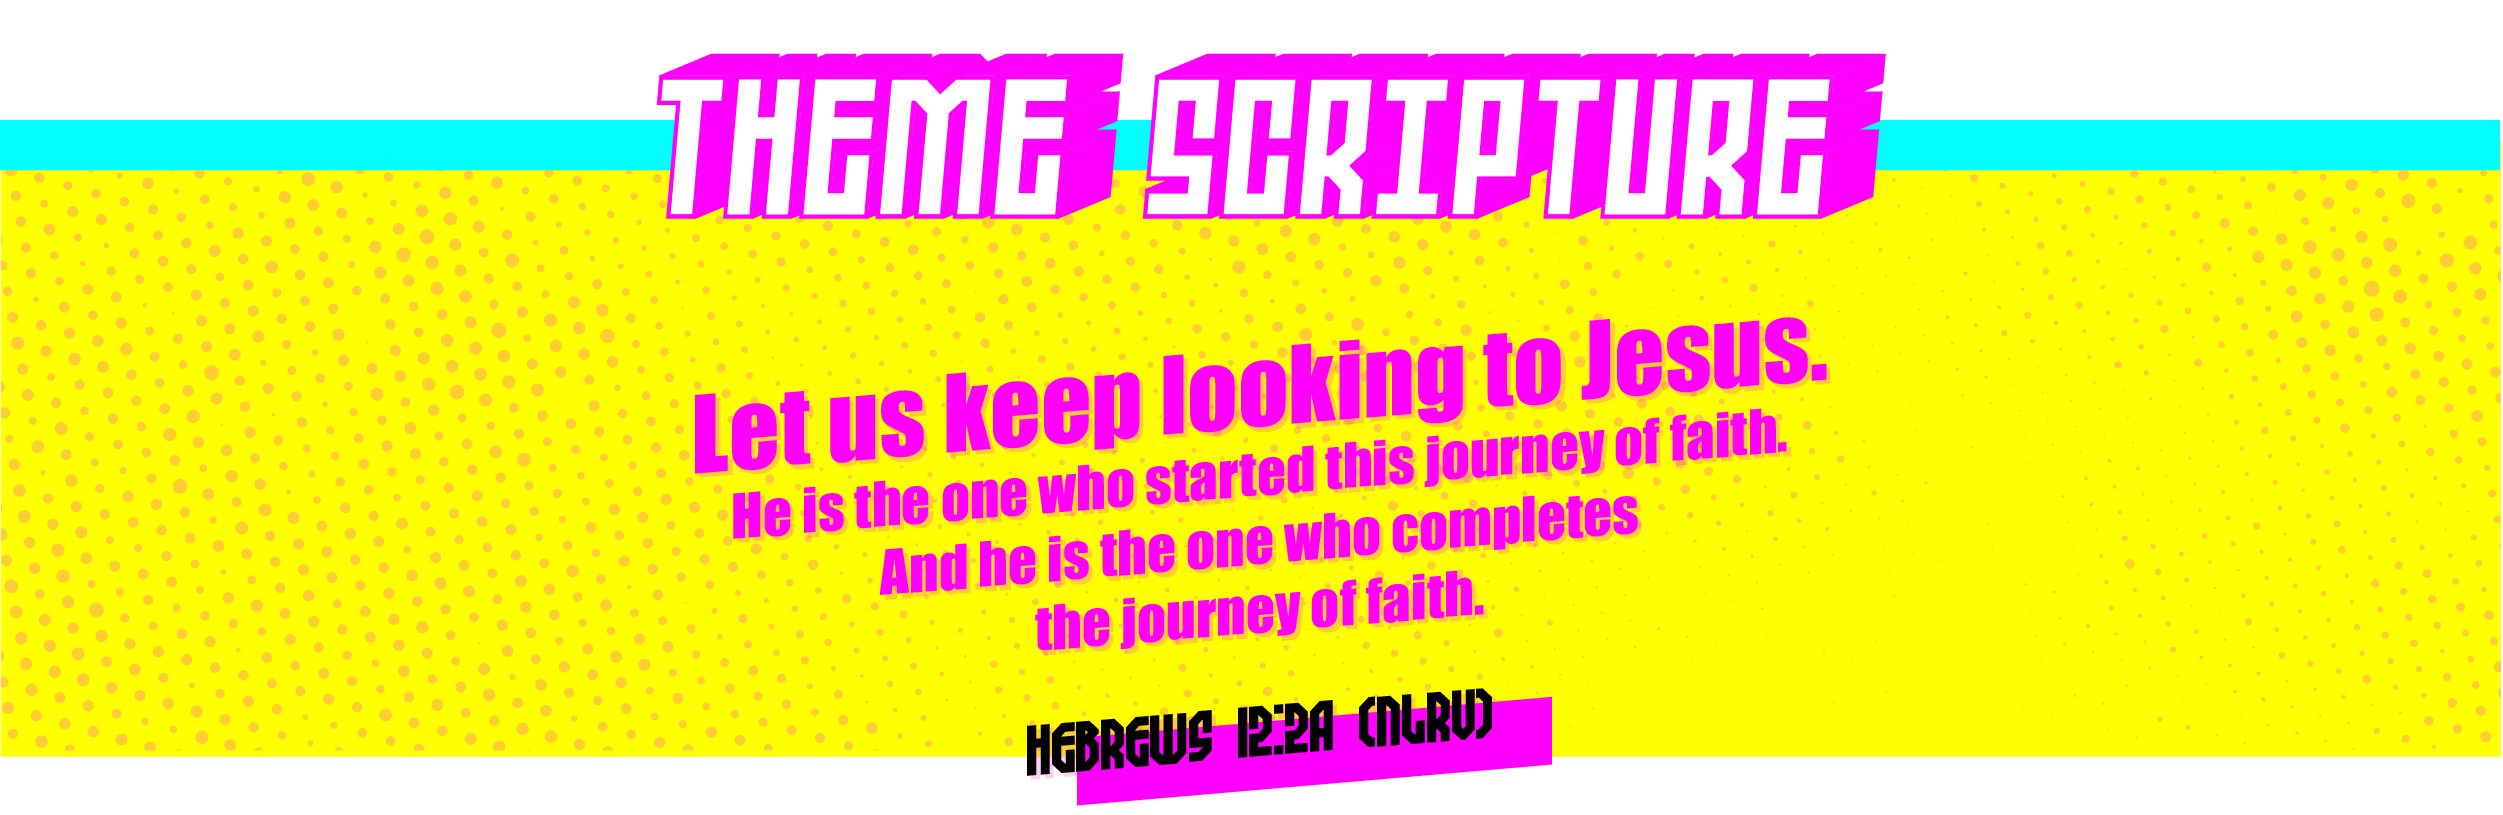 Let us keep looking to Jesus. He is the one who started this journey of faith. And he is the one who completes the journey of faith. Hebrews 12:2a (NLRV)